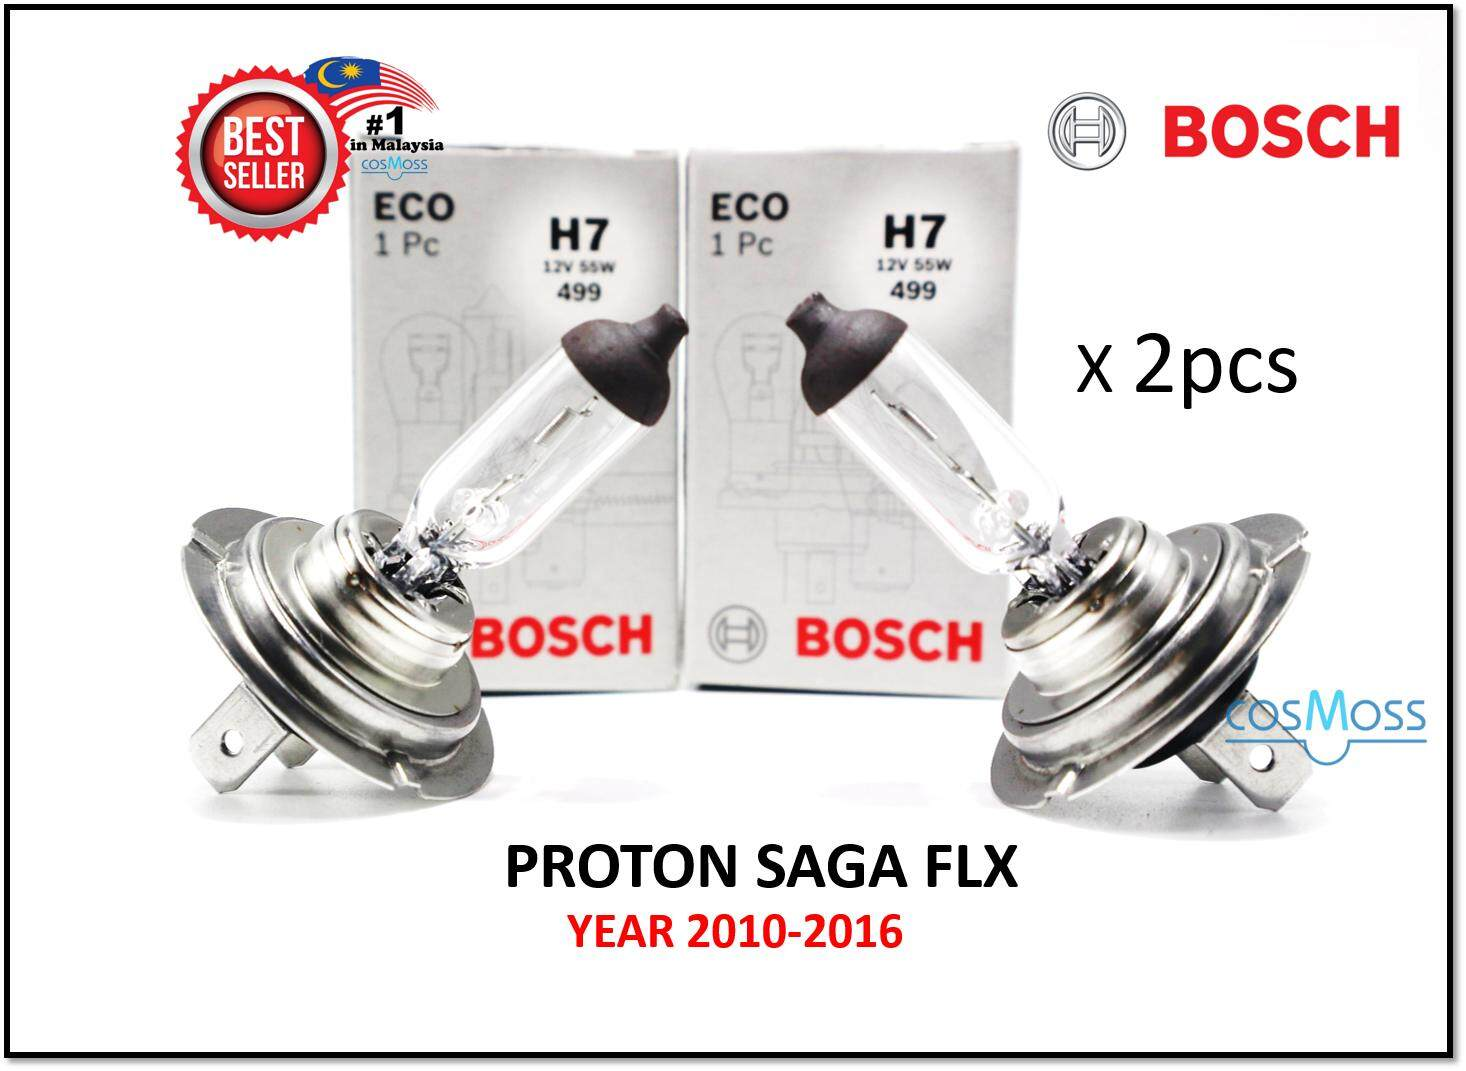 Bosch Power Tools With best Price At Lazada Malaysia